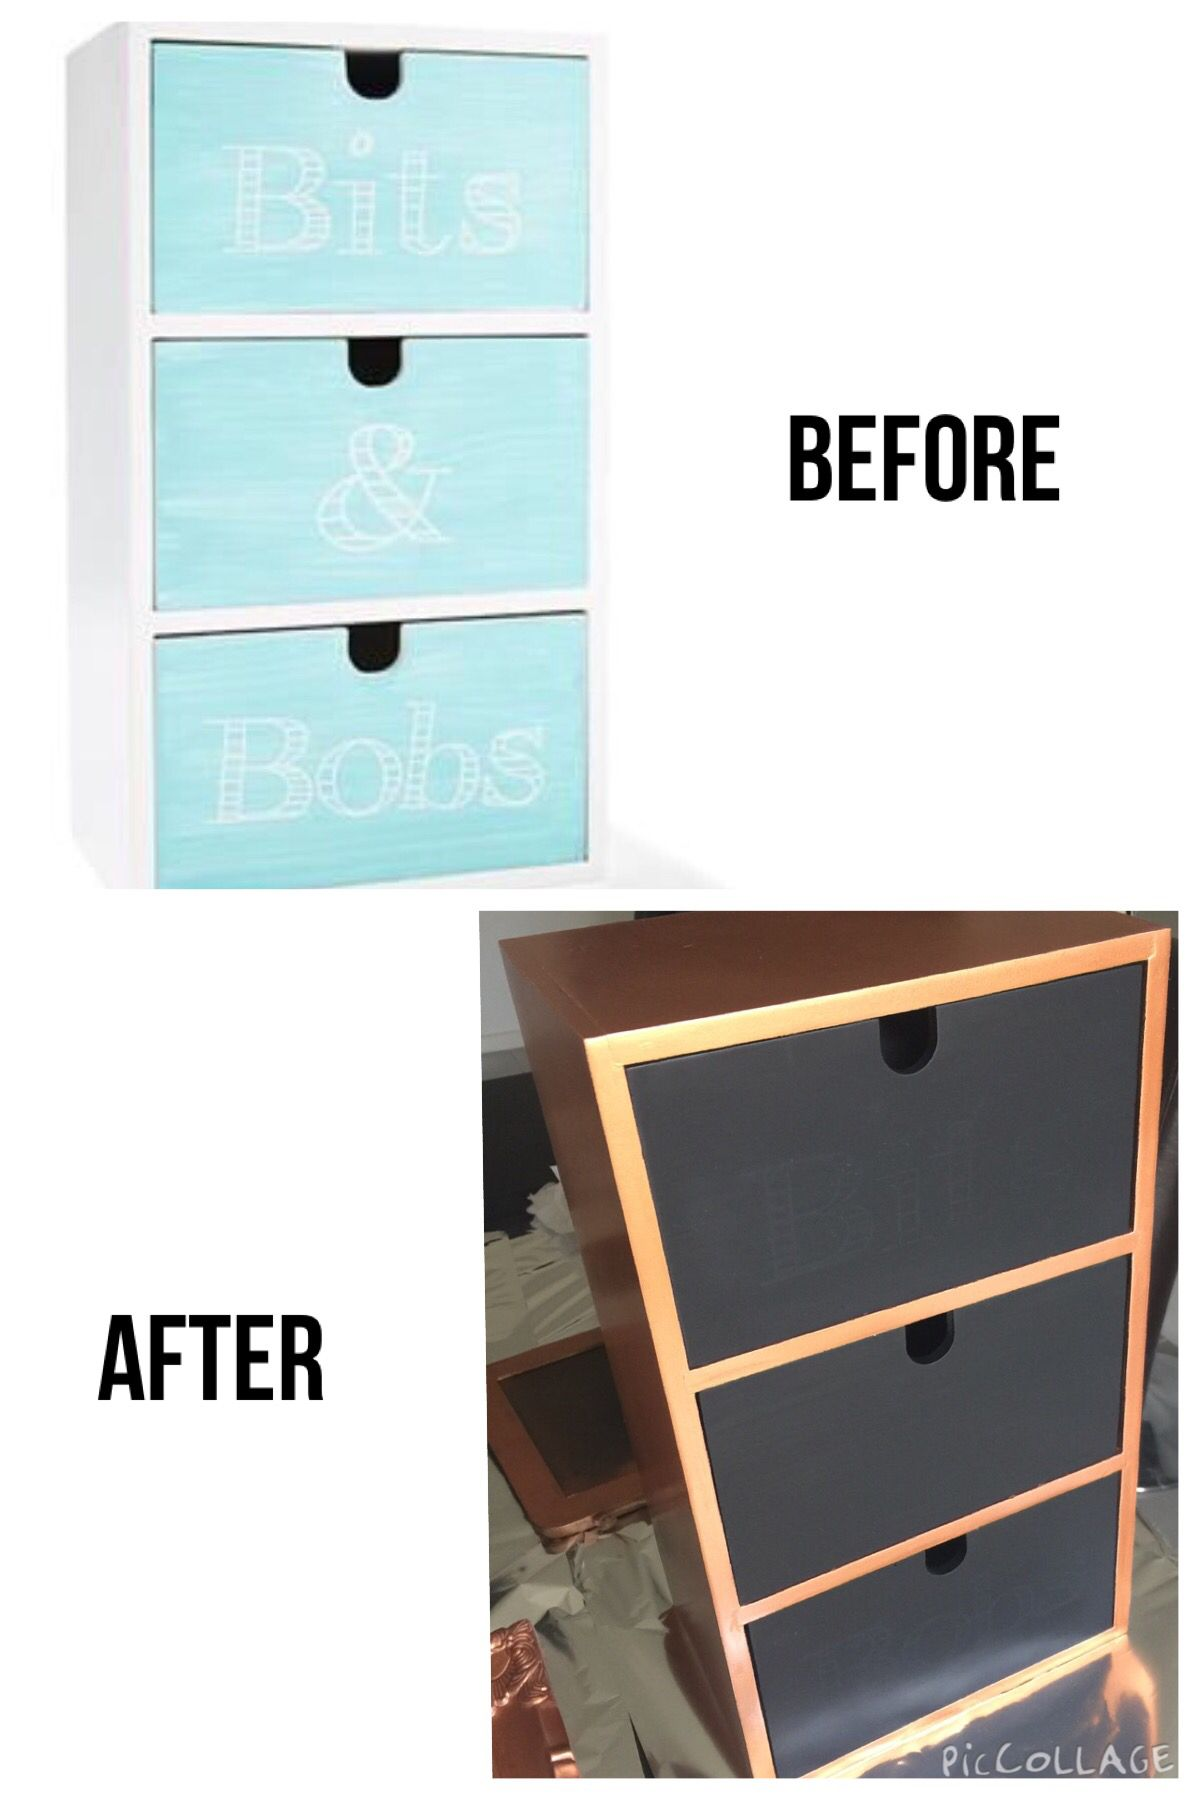 Small Wooden Drawers For Storage On Desk Or Ss Paint Them White To Match Bedroom Colour Scheme